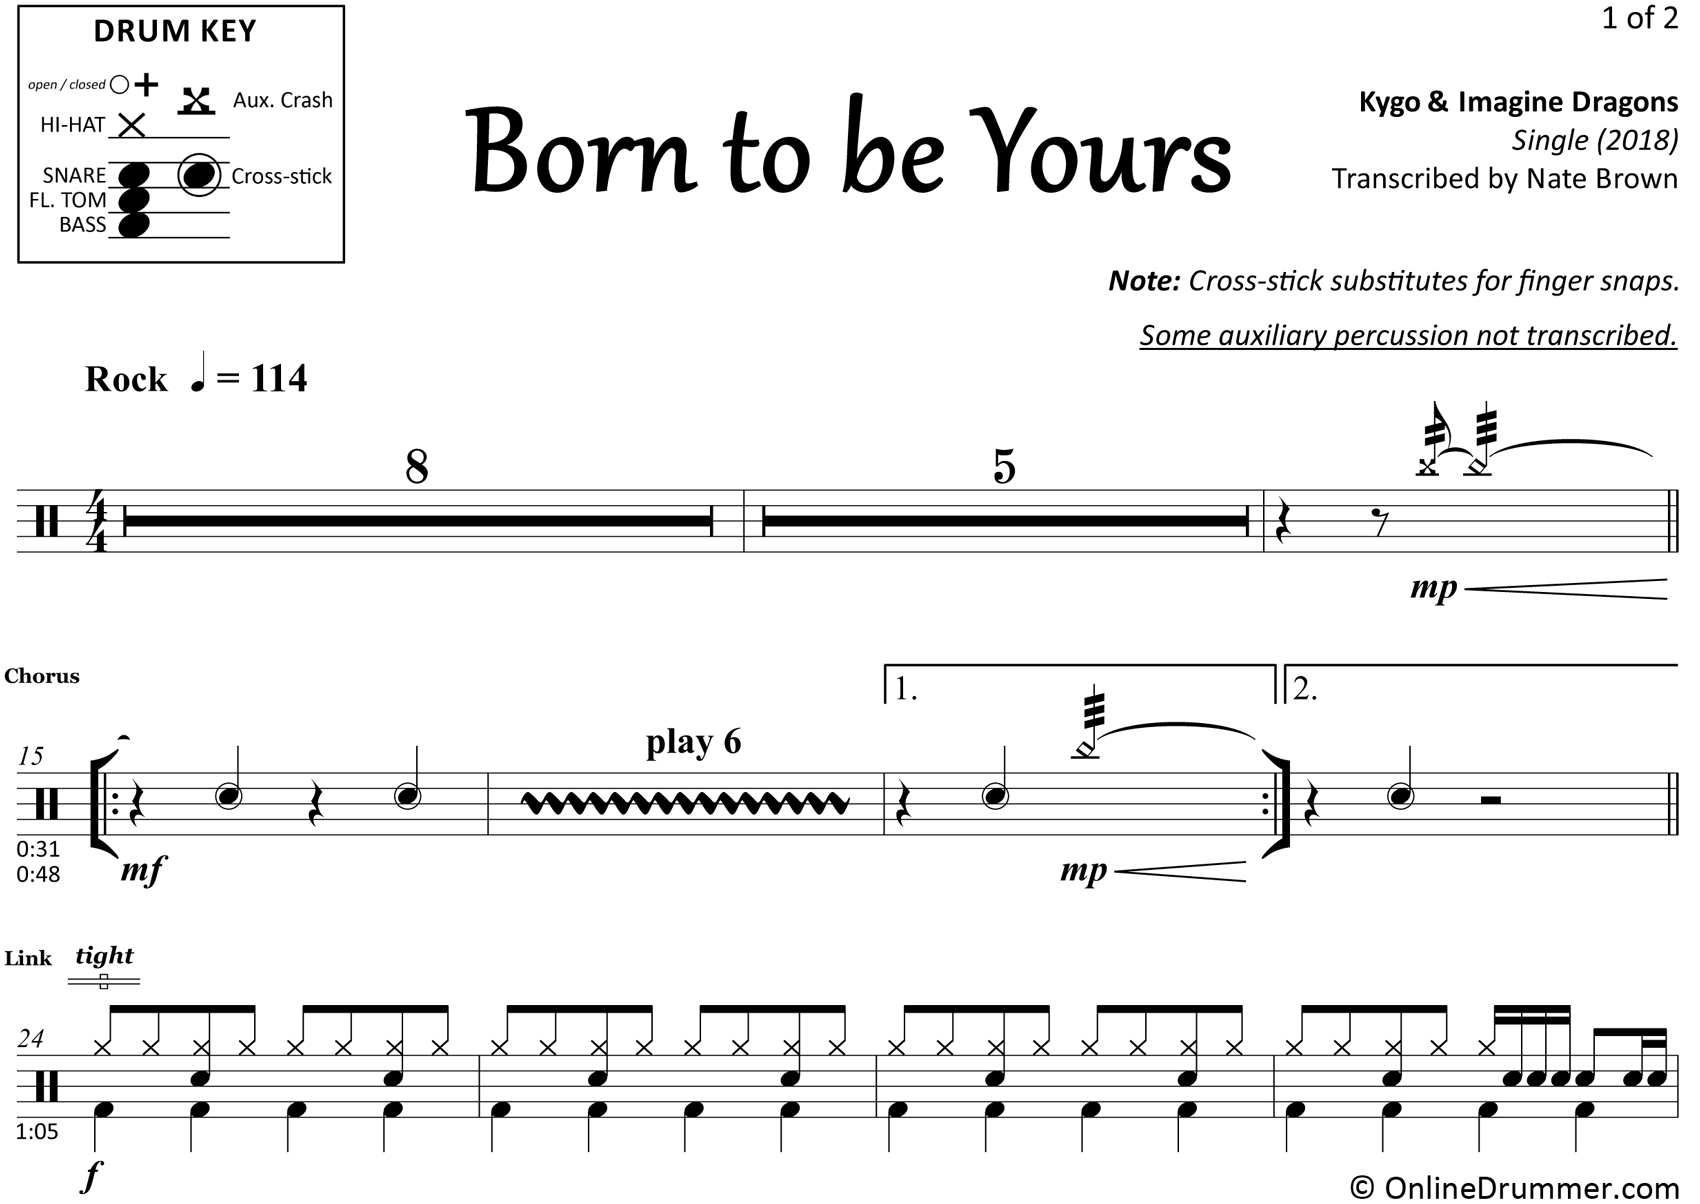 Born To Be Yours - Kygo & Imagine Dragons - Drum Sheet Music